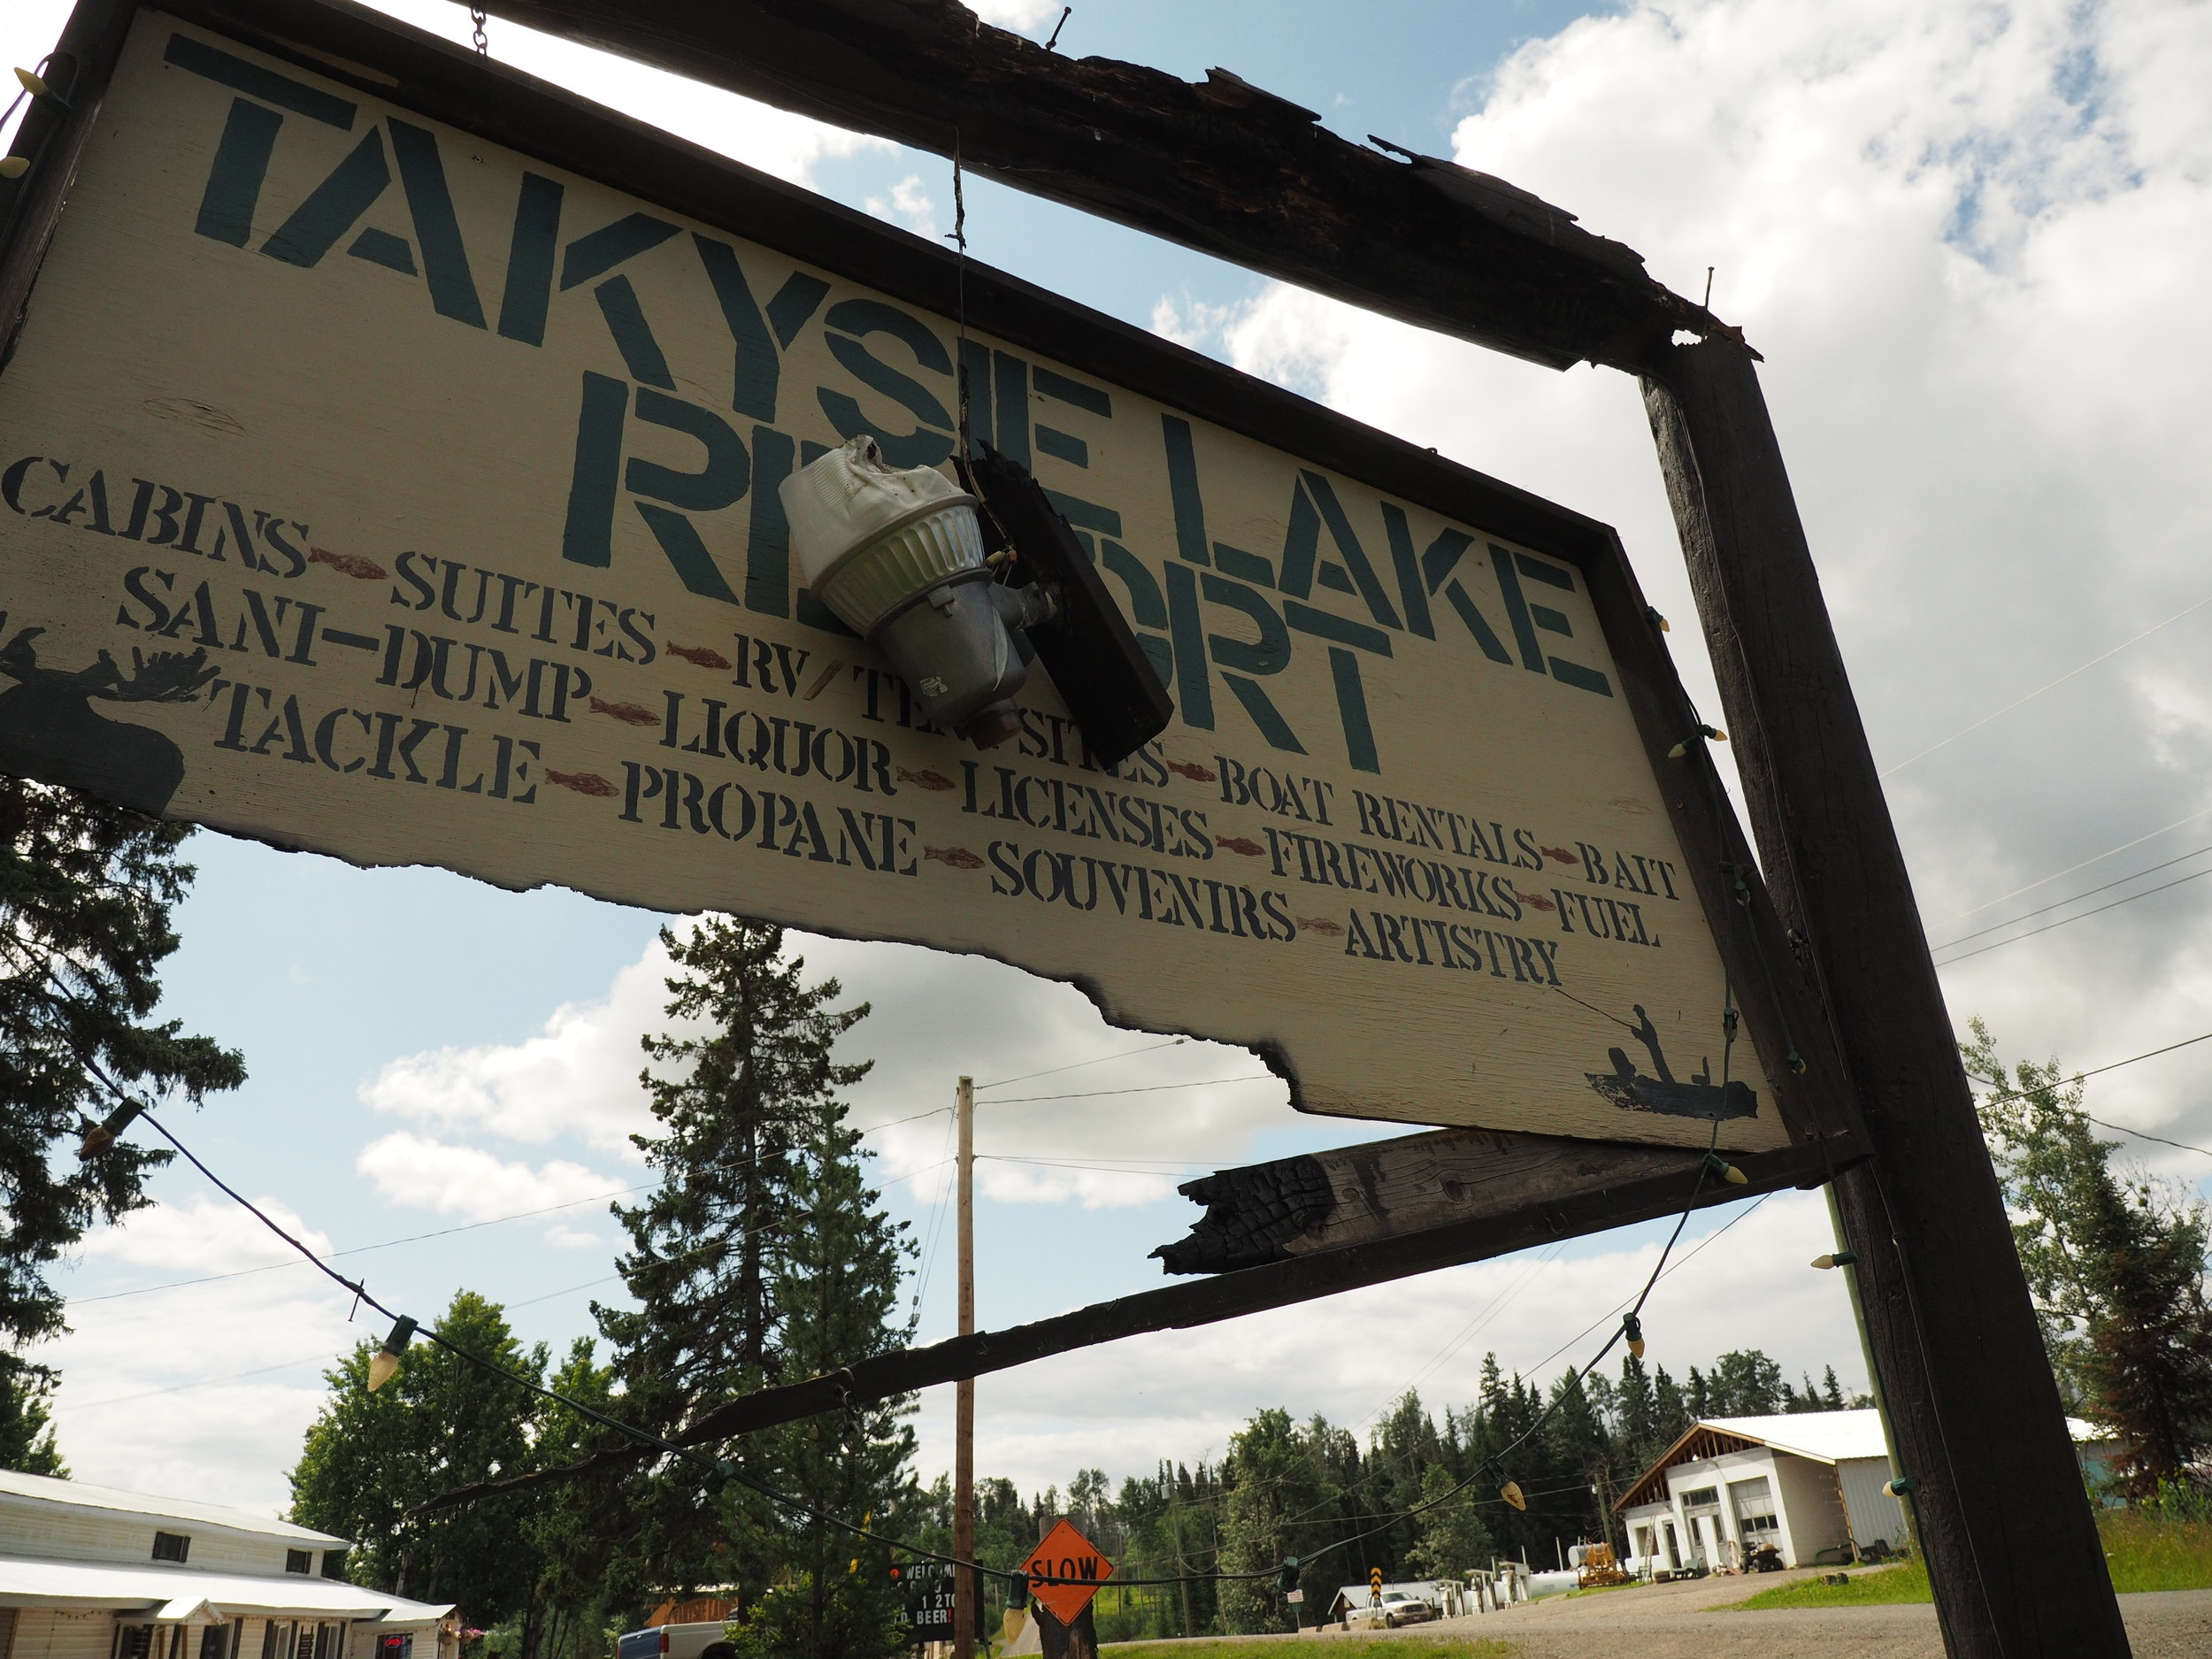 Takysie Lake Resort Sign